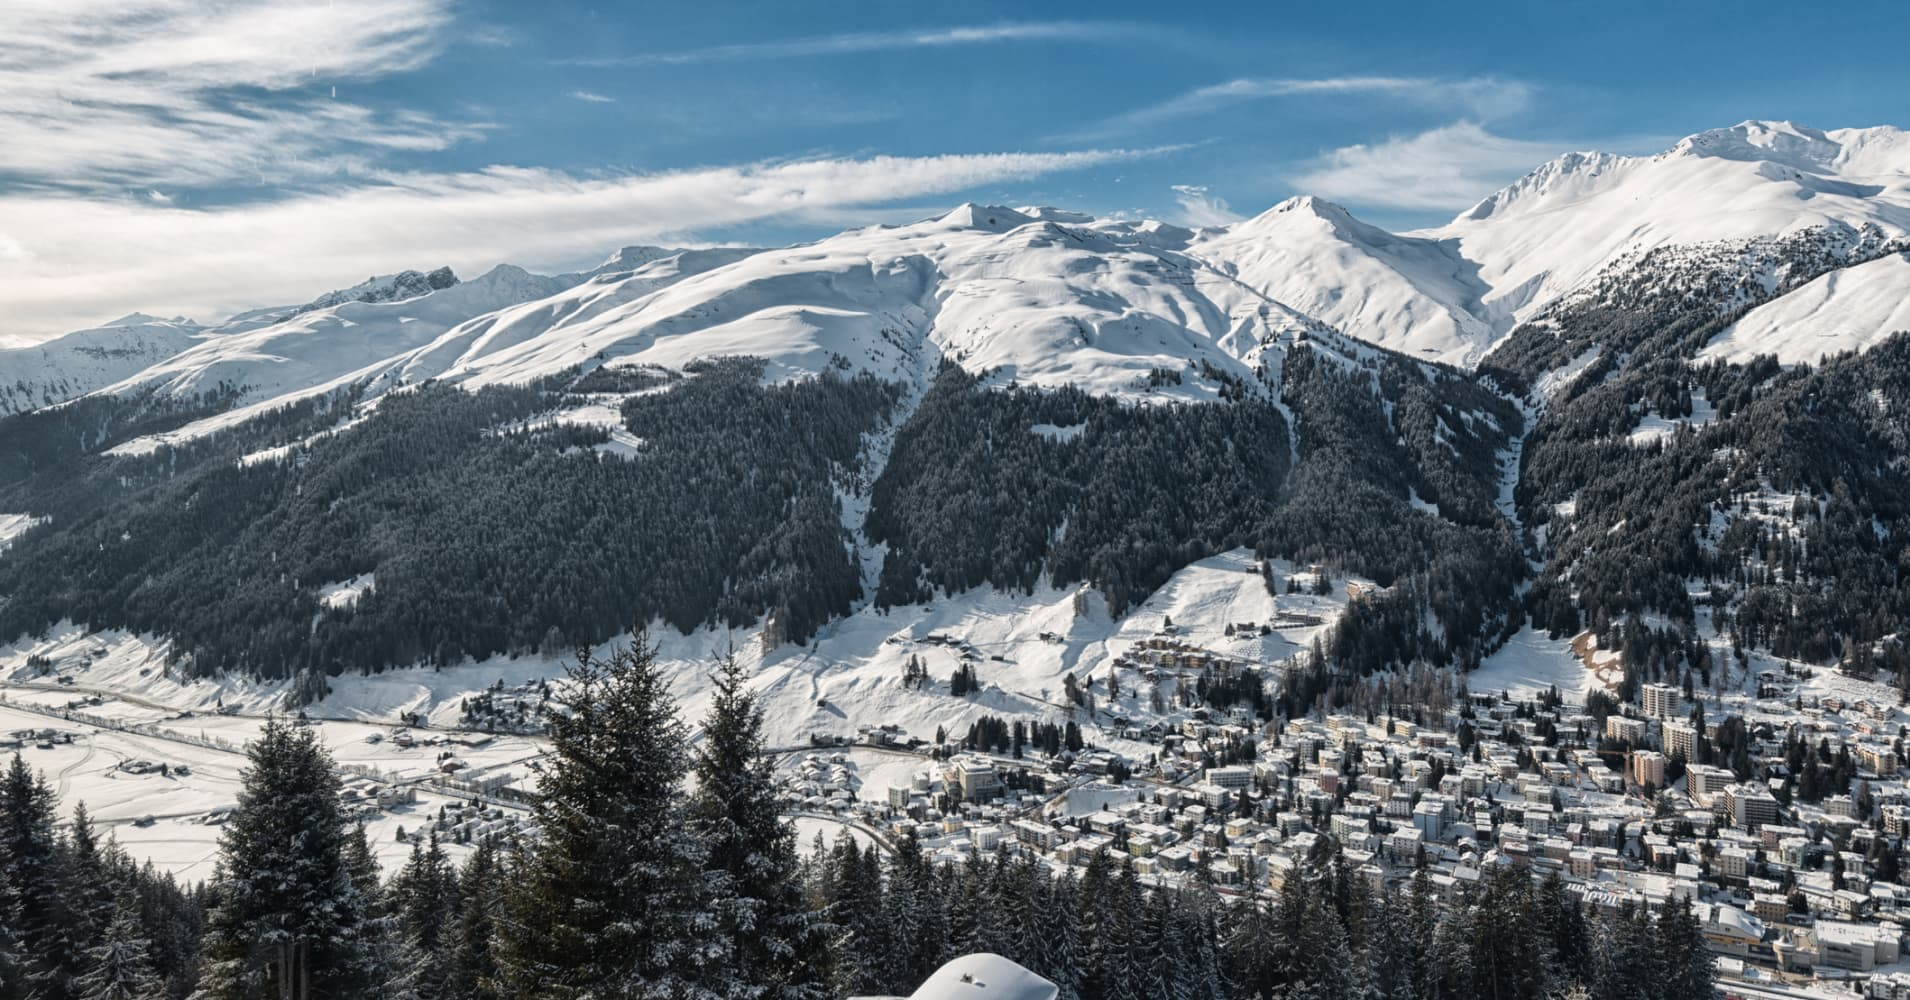 This is the famous town Davos in Switzerland in winter.